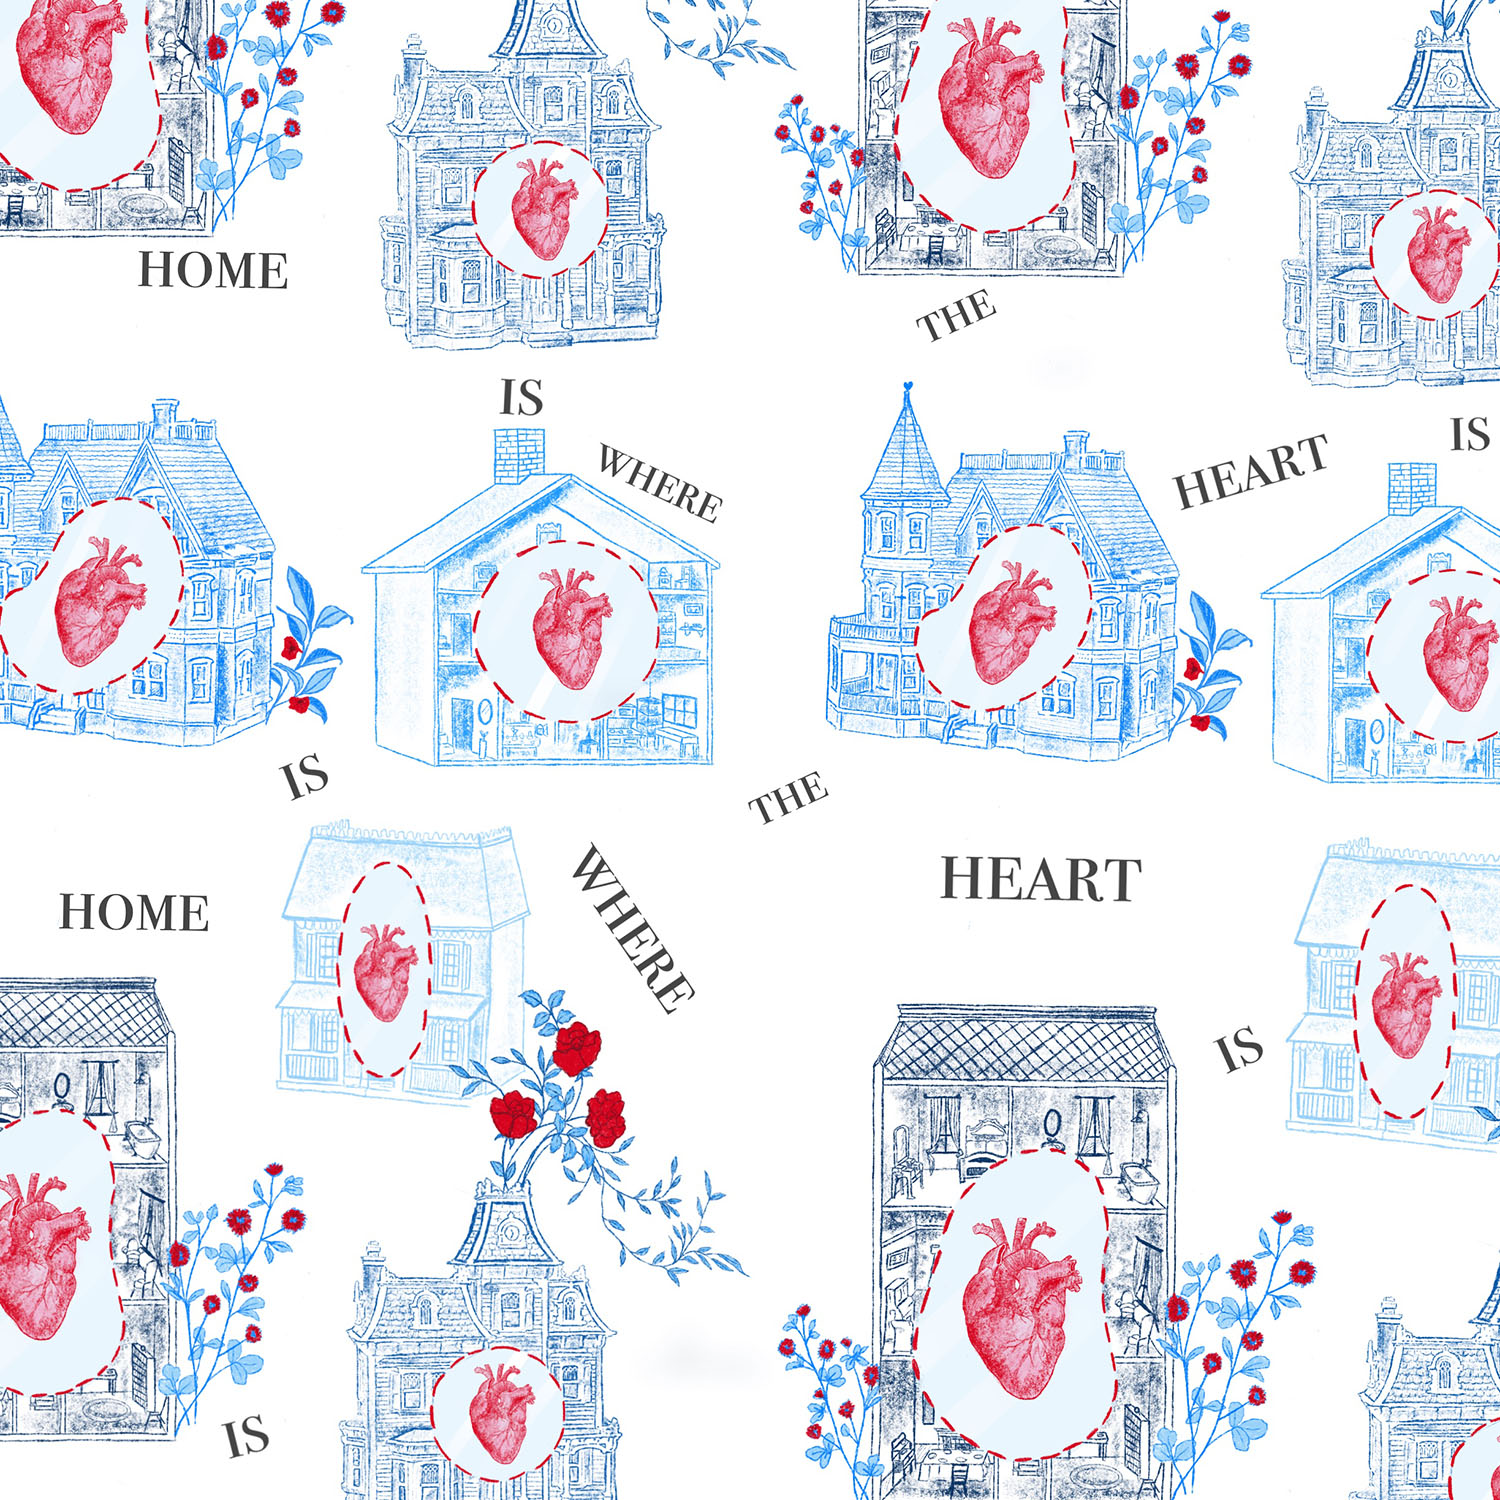 PHRASES OF FLORAL ANATOMY - 'Home is Where the Heart is'